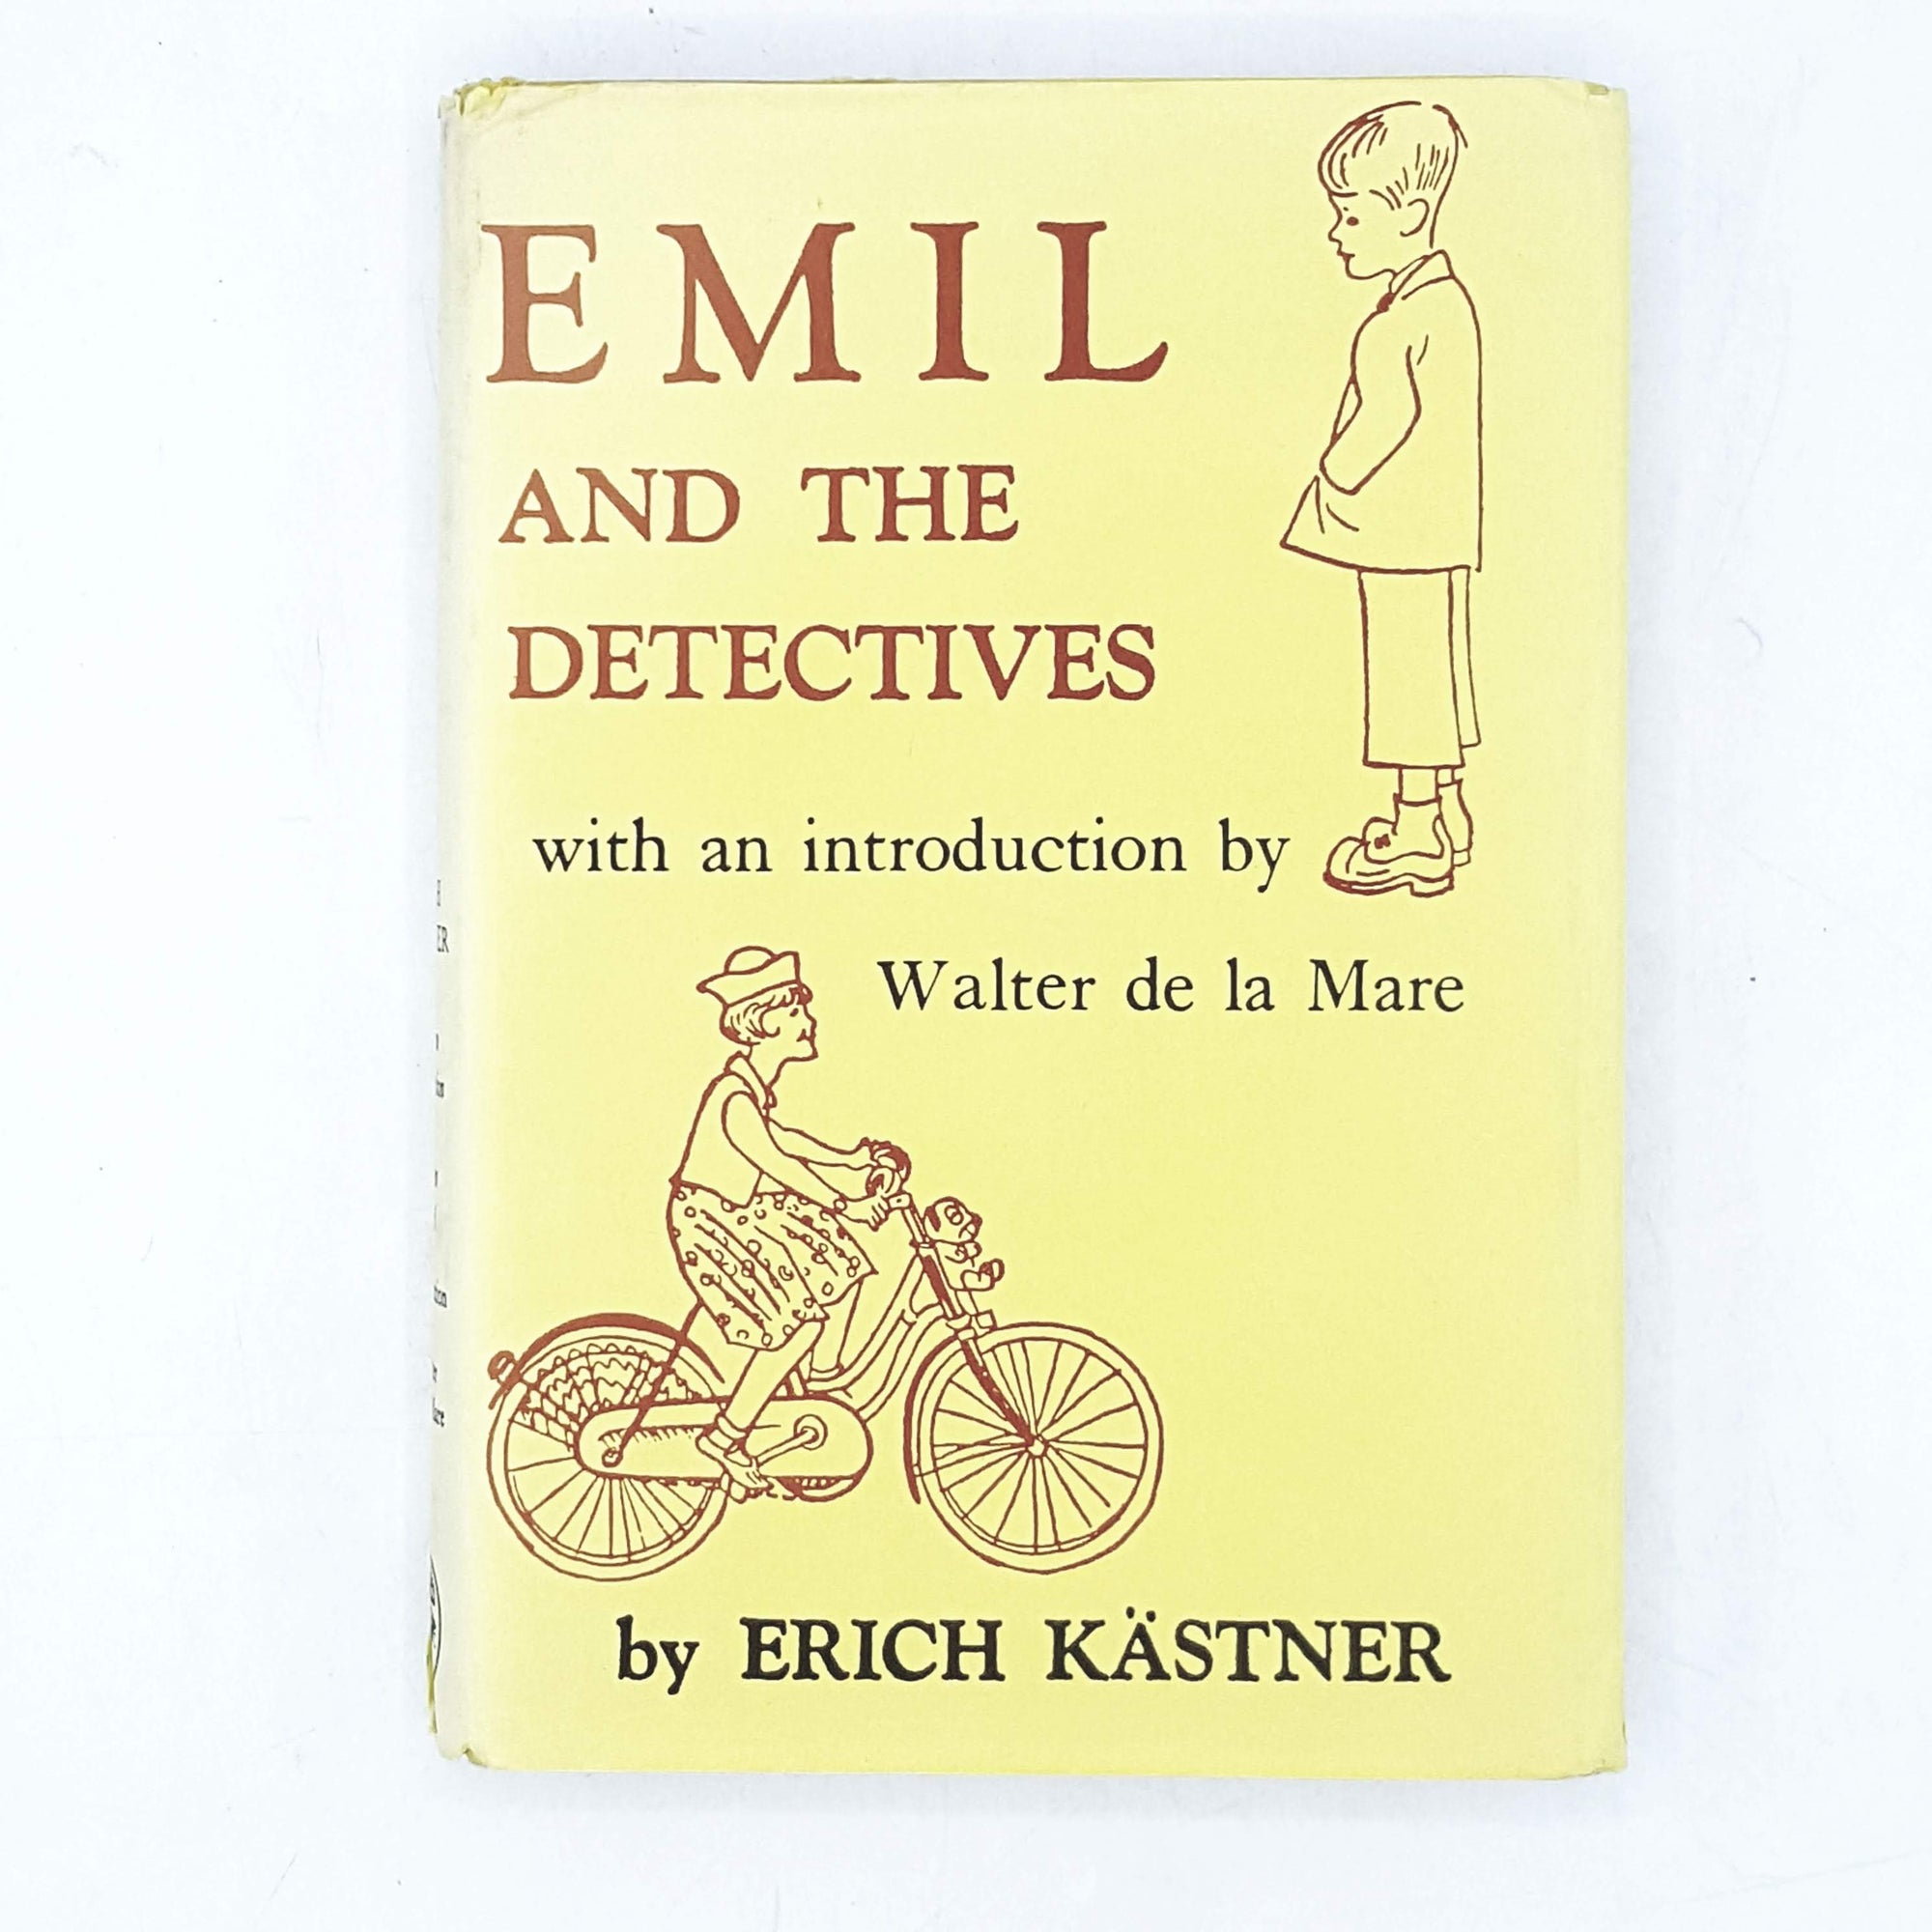 Illustrated Emily and the Detectives by Erich Kästner